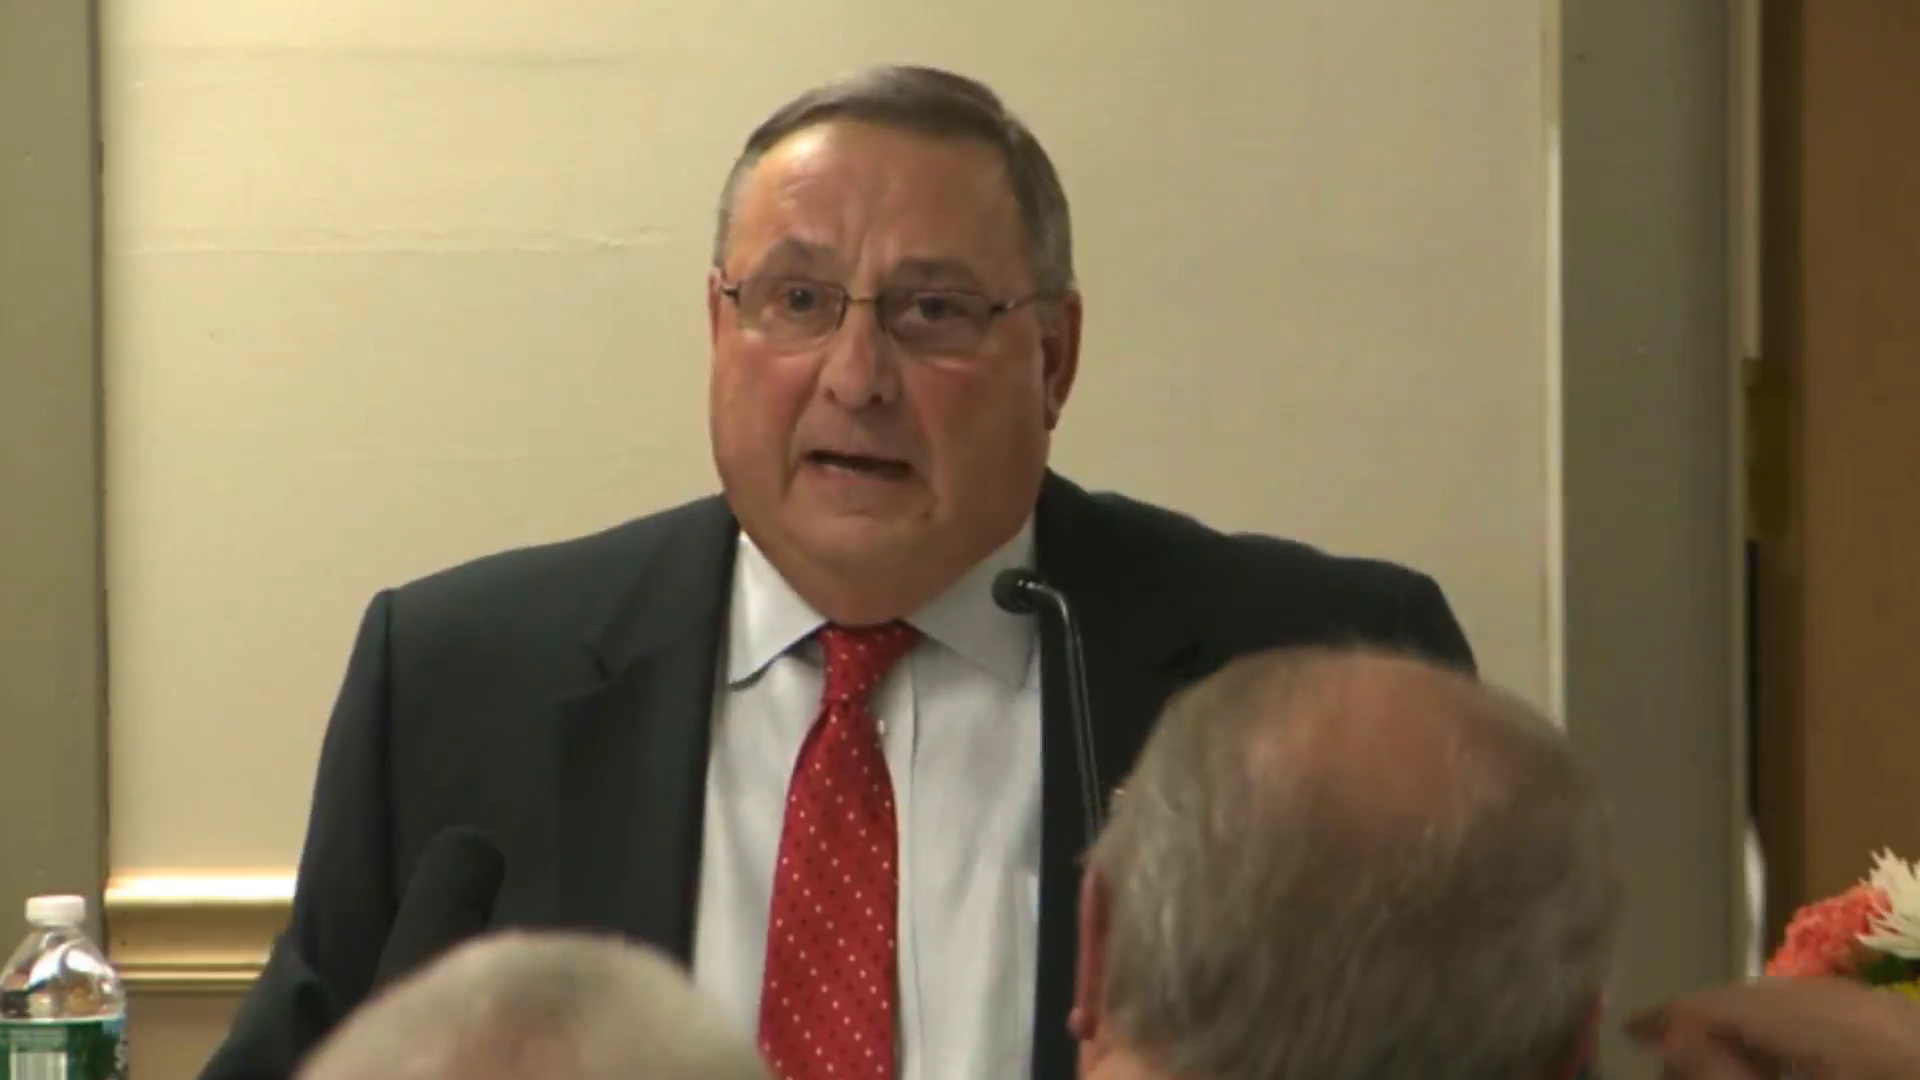 A Short History of Gov. LePage's Controversial Comments